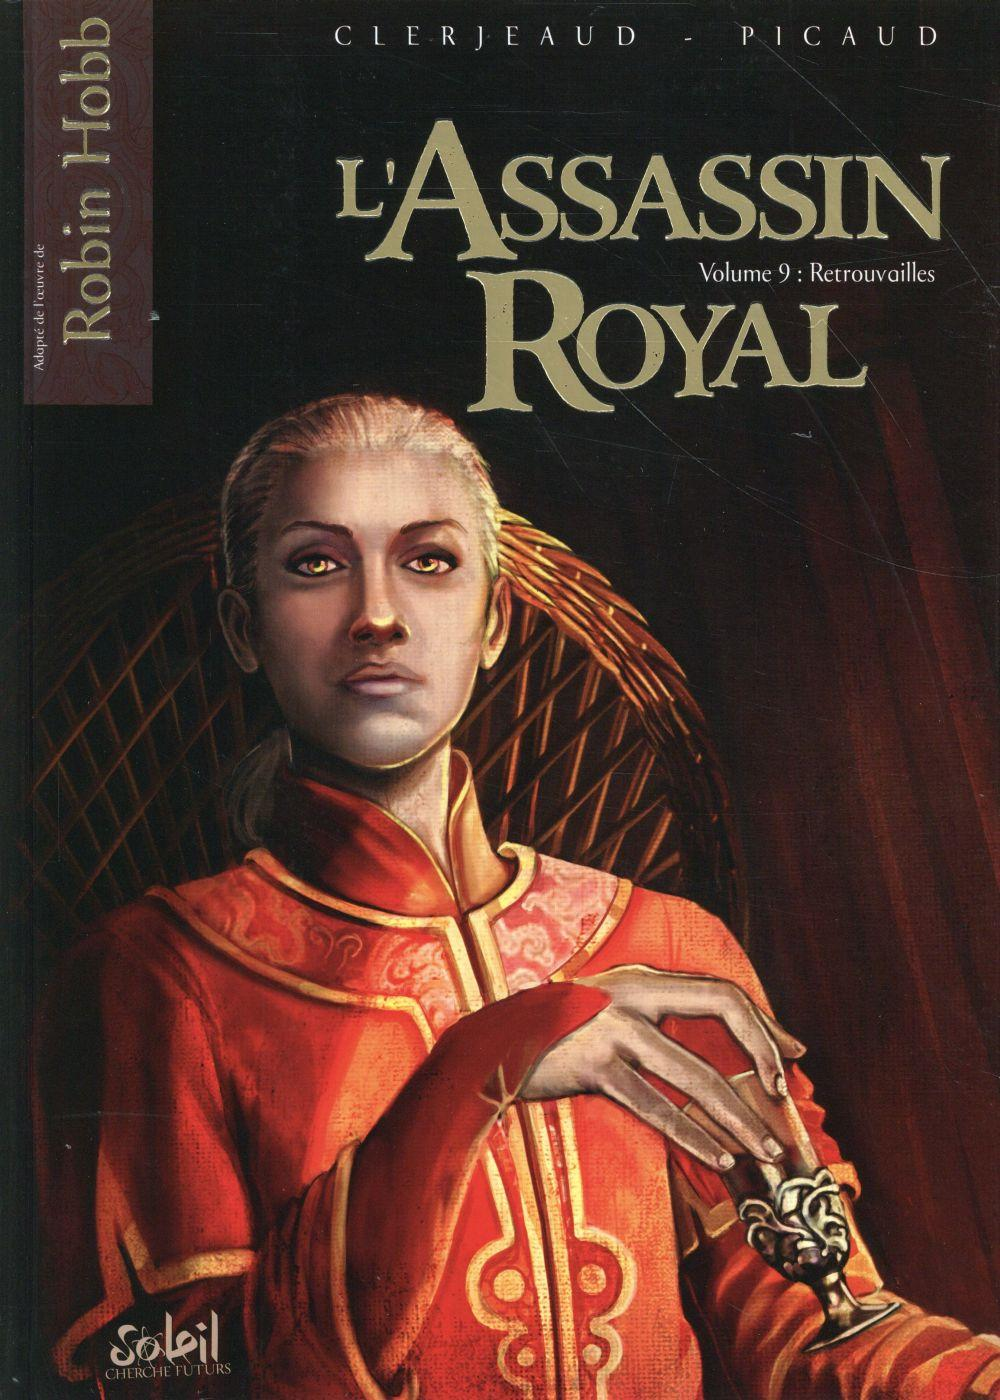 L'assassin royal t.9 ; retrouvailles  - Christophe Picaud  - Jean-Luc Clerjeaud